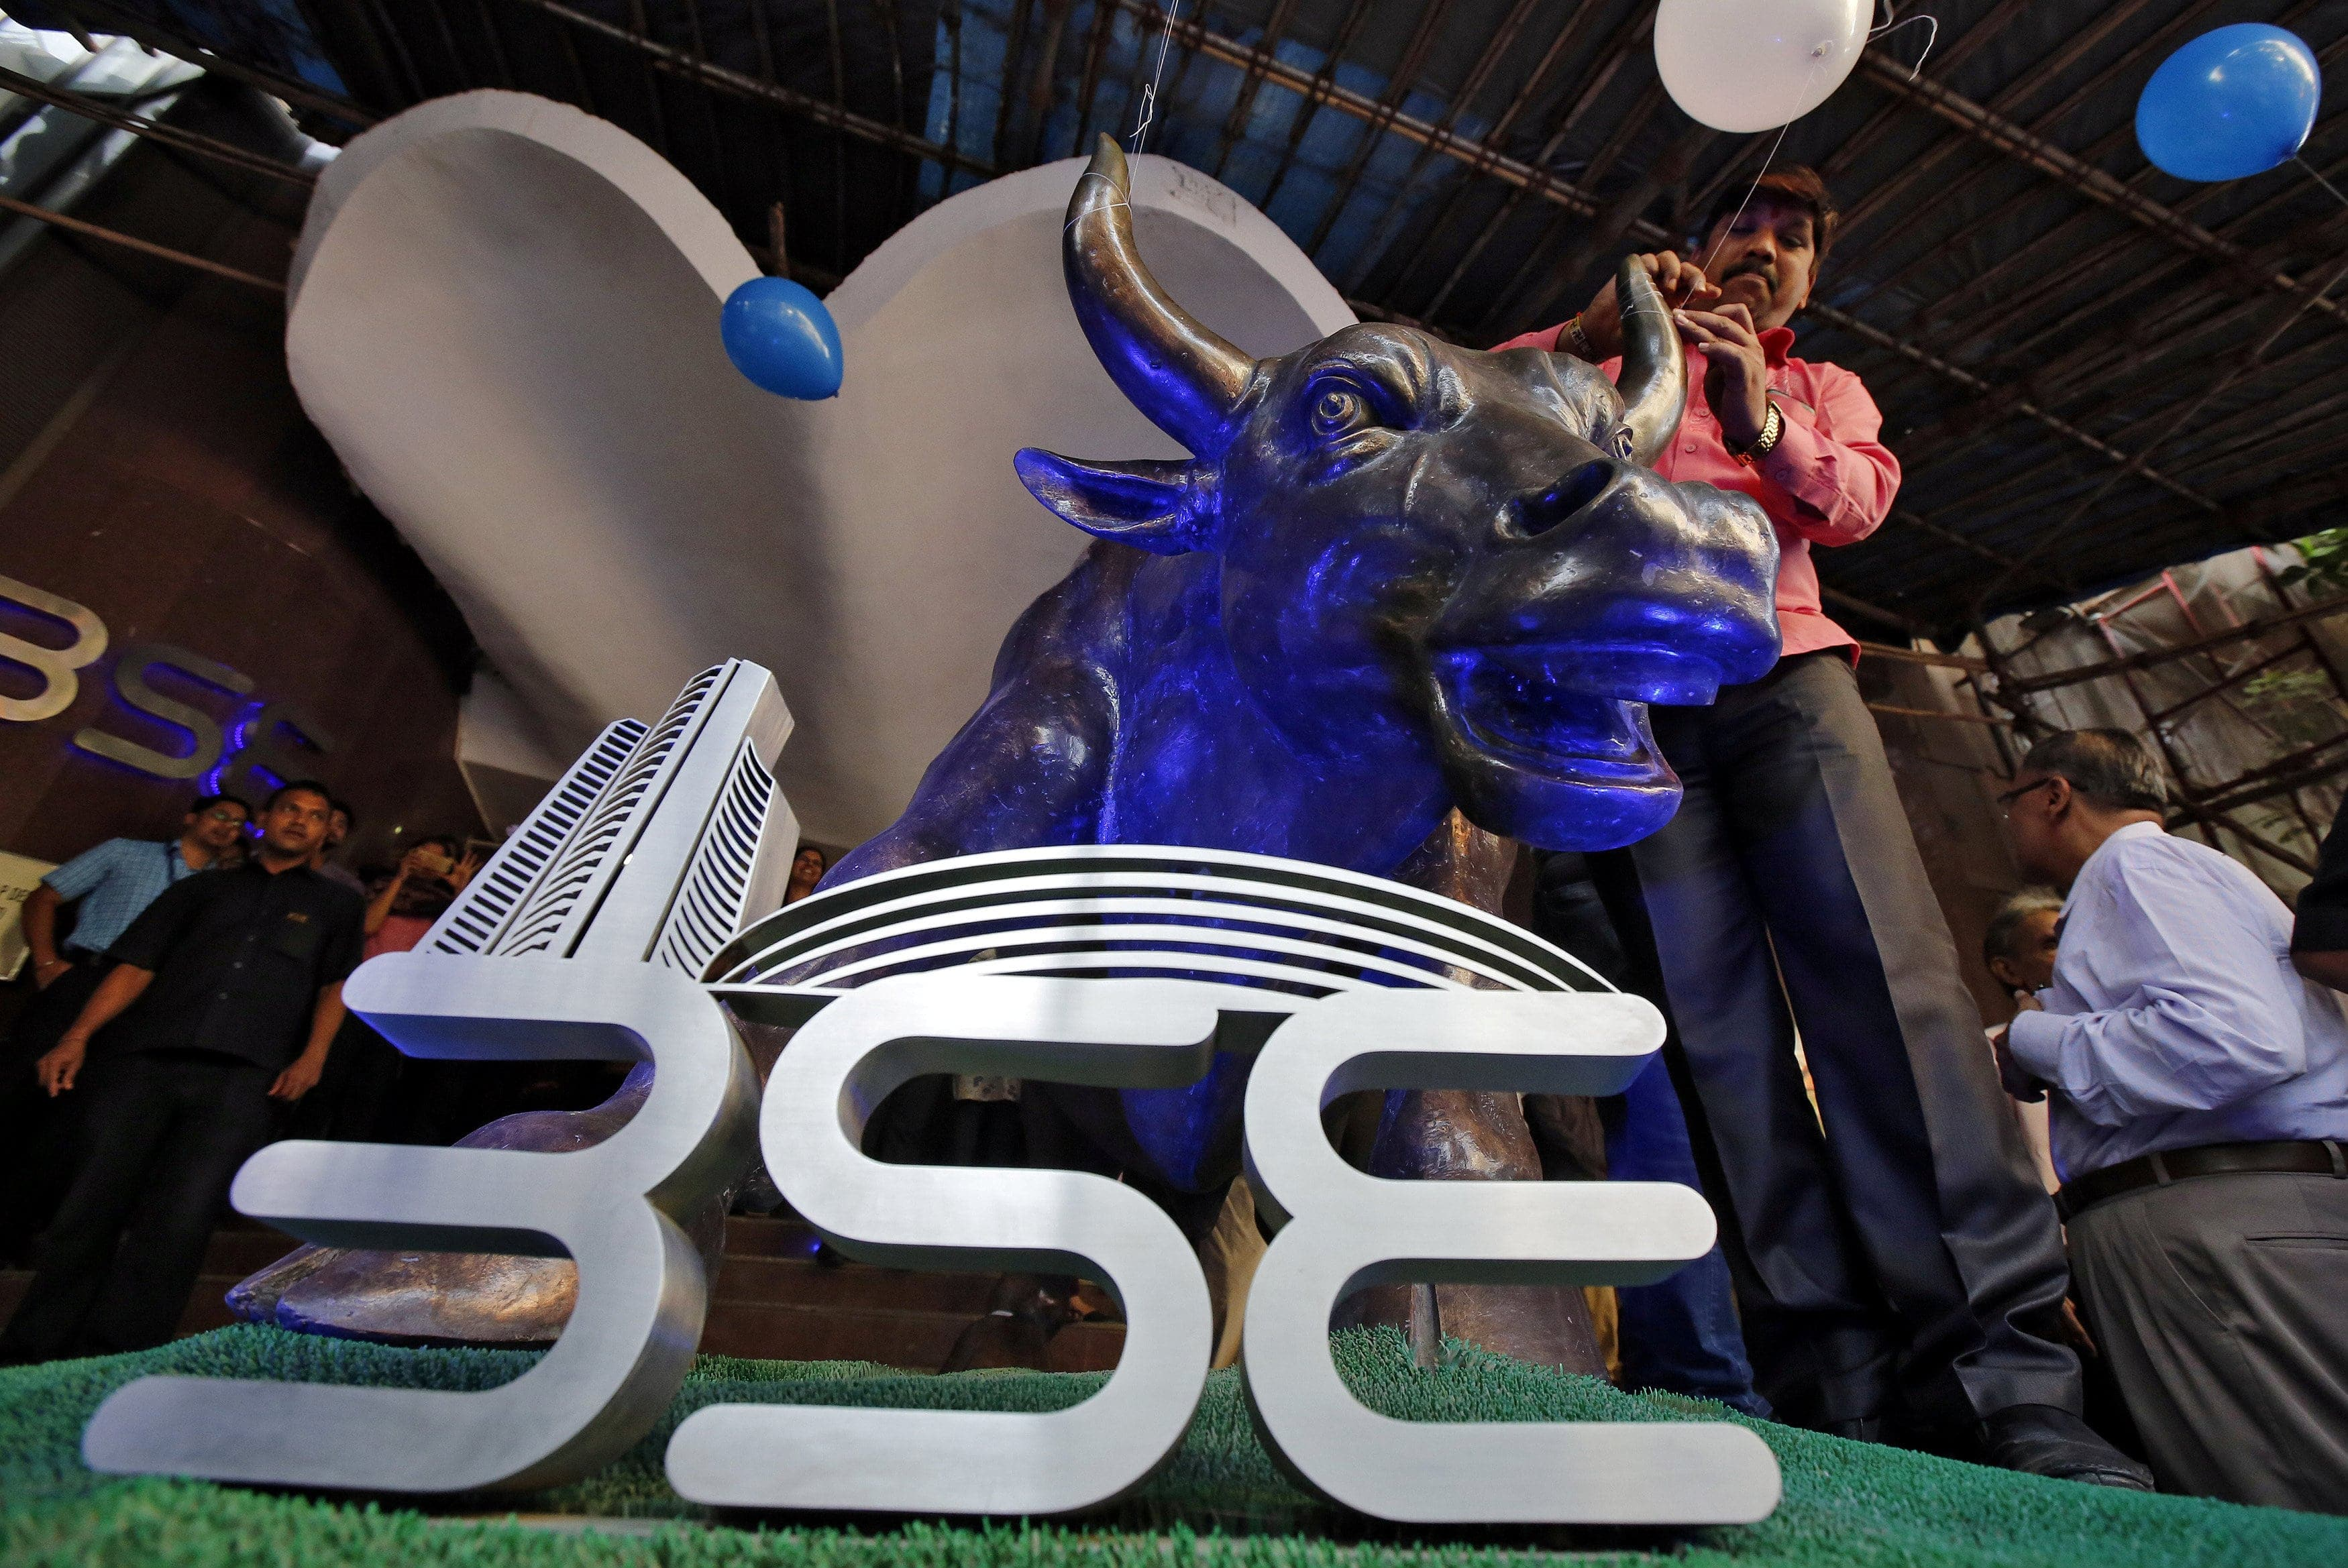 FILE PHOTO: A man ties a balloon to the horns of a bull statue at the entrance of the Bombay Stock Exchange (BSE) while celebrating the Sensex index rising to over 30,000, in Mumbai, India April 26, 2017. Credit: Reuters/Shailesh Andrade/File Photo